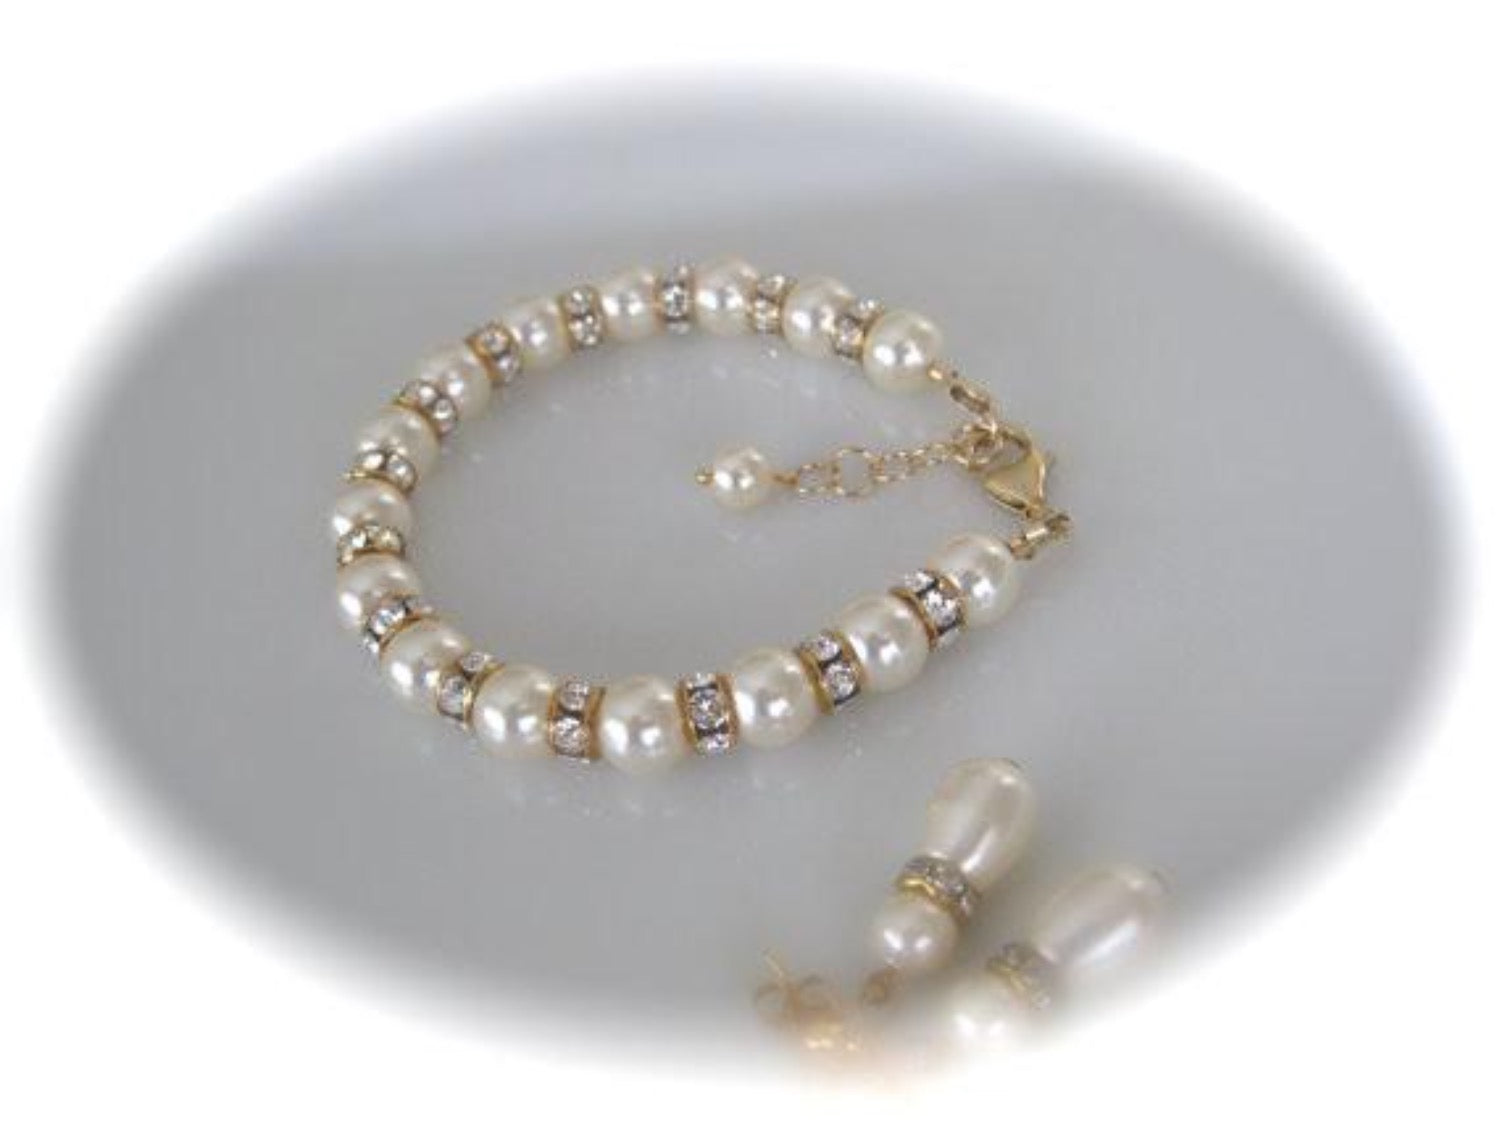 Ivory and Gold Bracelet and Earrings Bridal Jewelry - Clairesbridal - 2